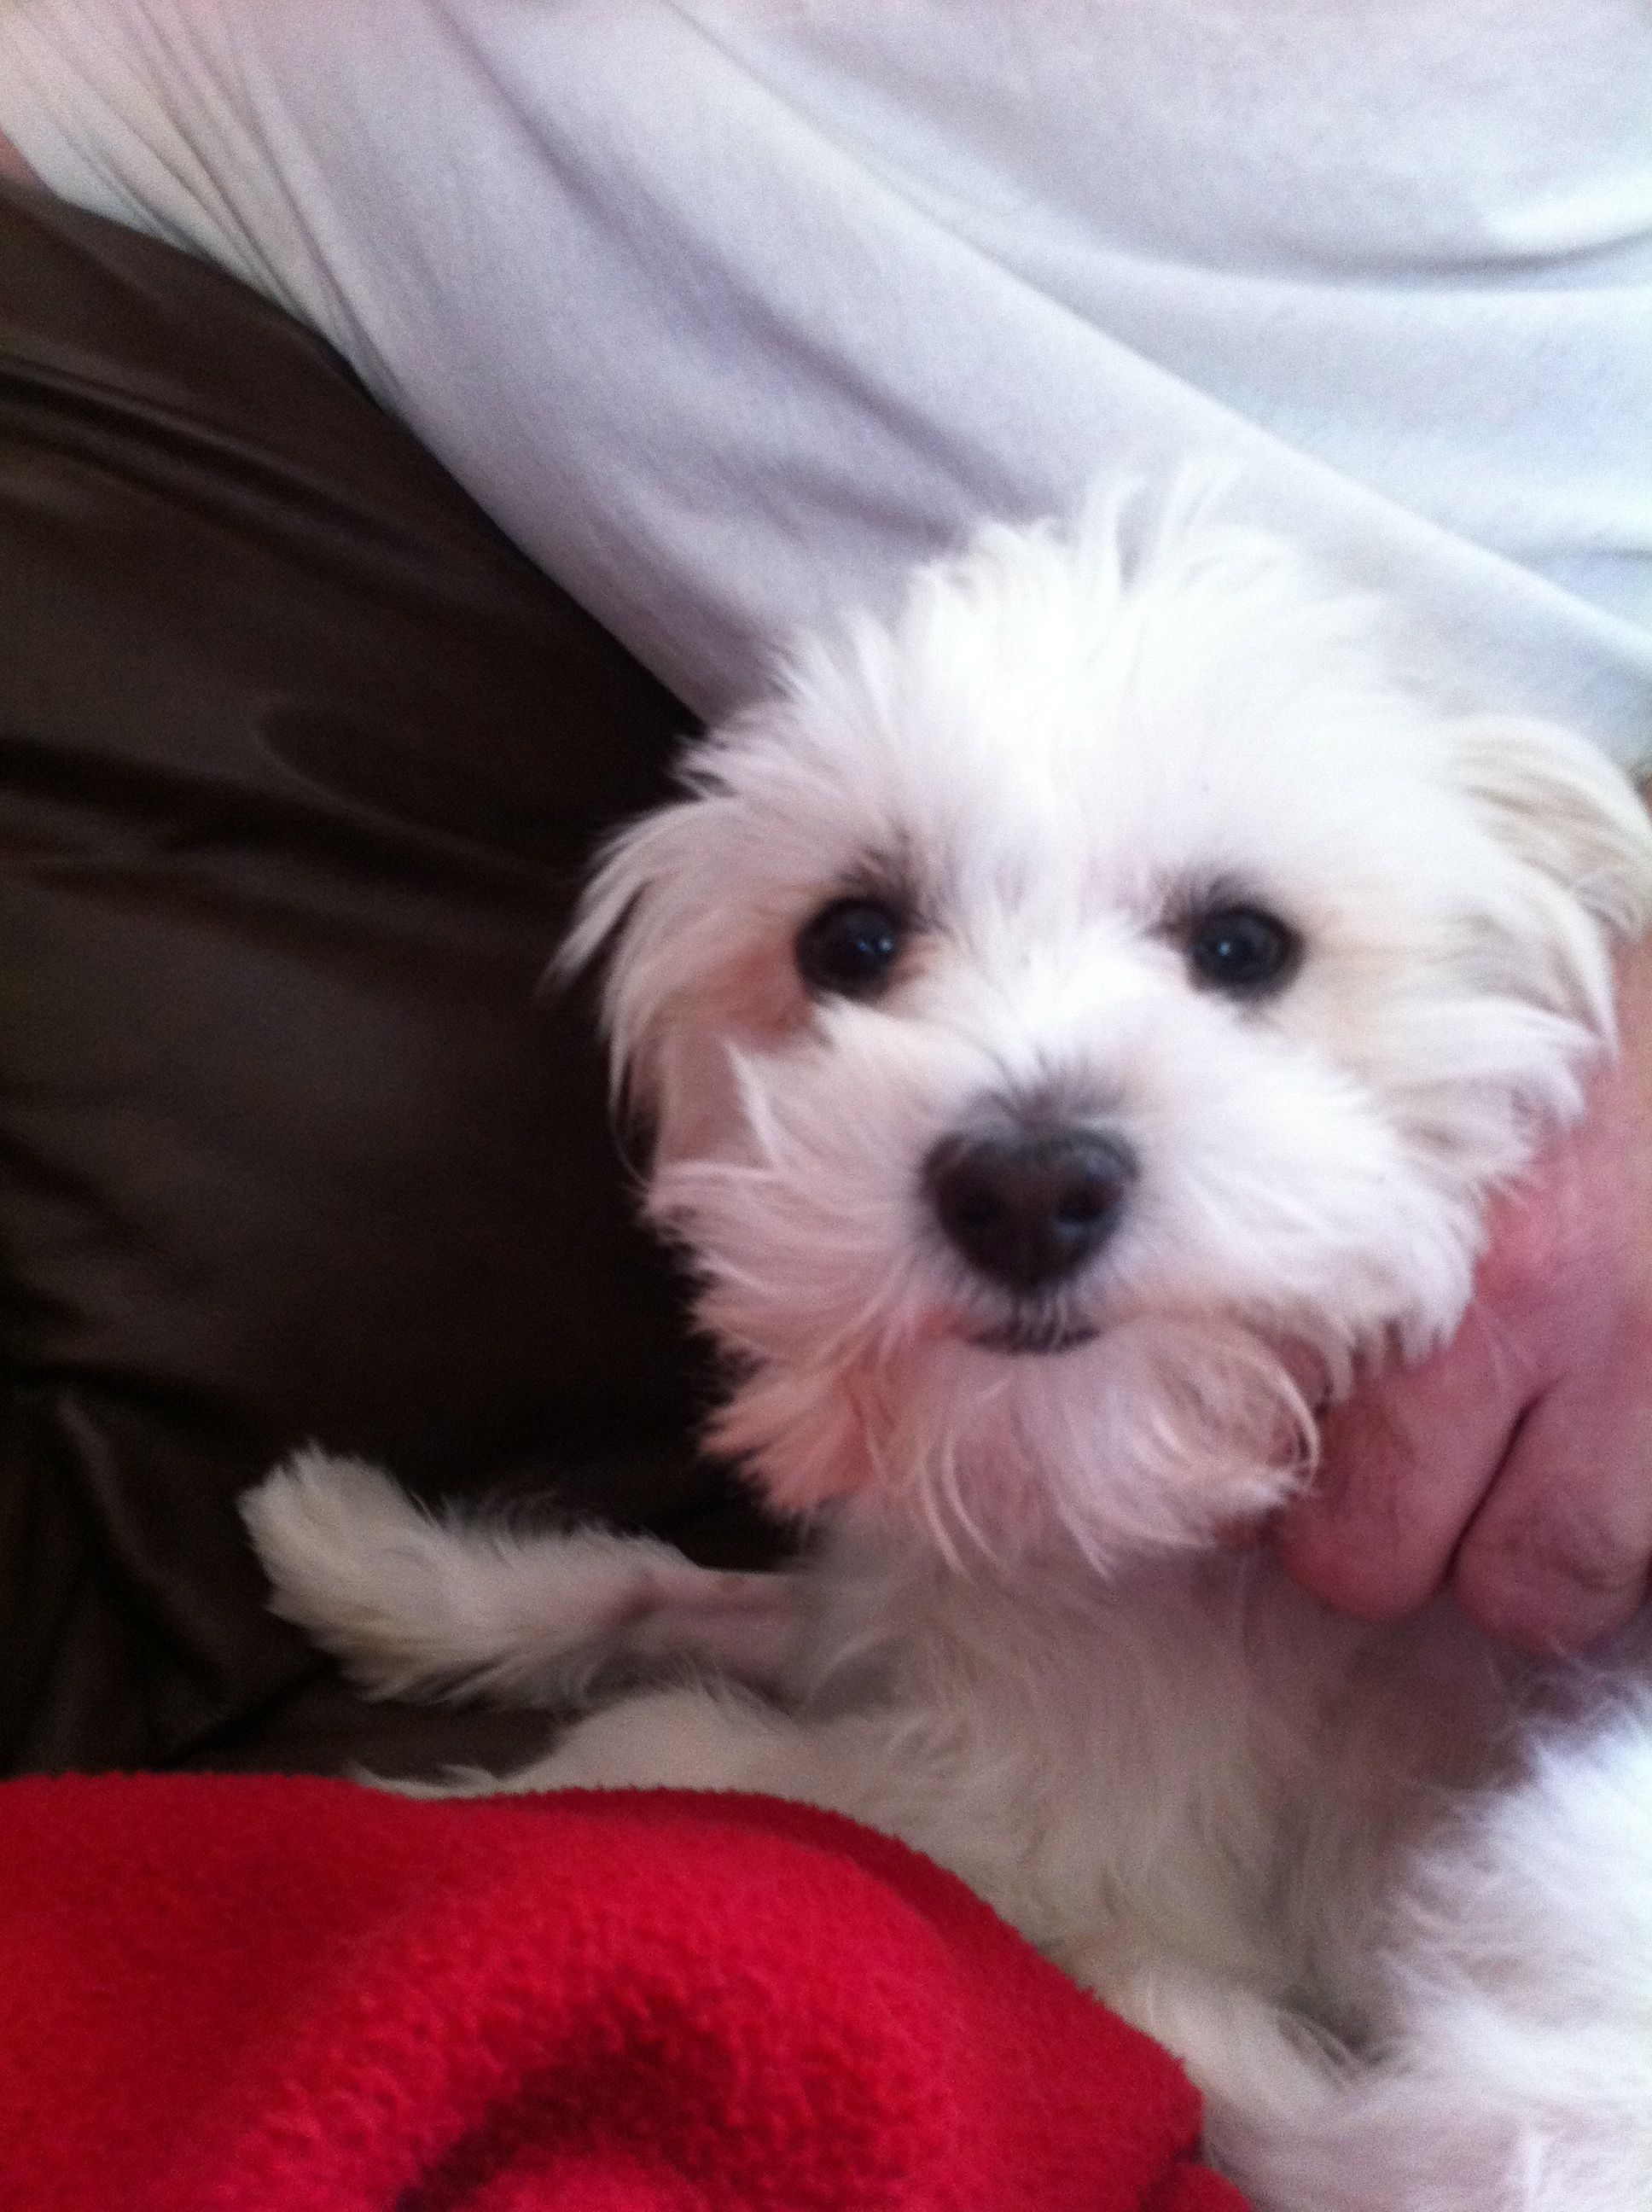 79 Full Grown Jack Russell Maltese Mix In 2020 Jack Russell Jack Russell Terrier Terrier Dog Breeds